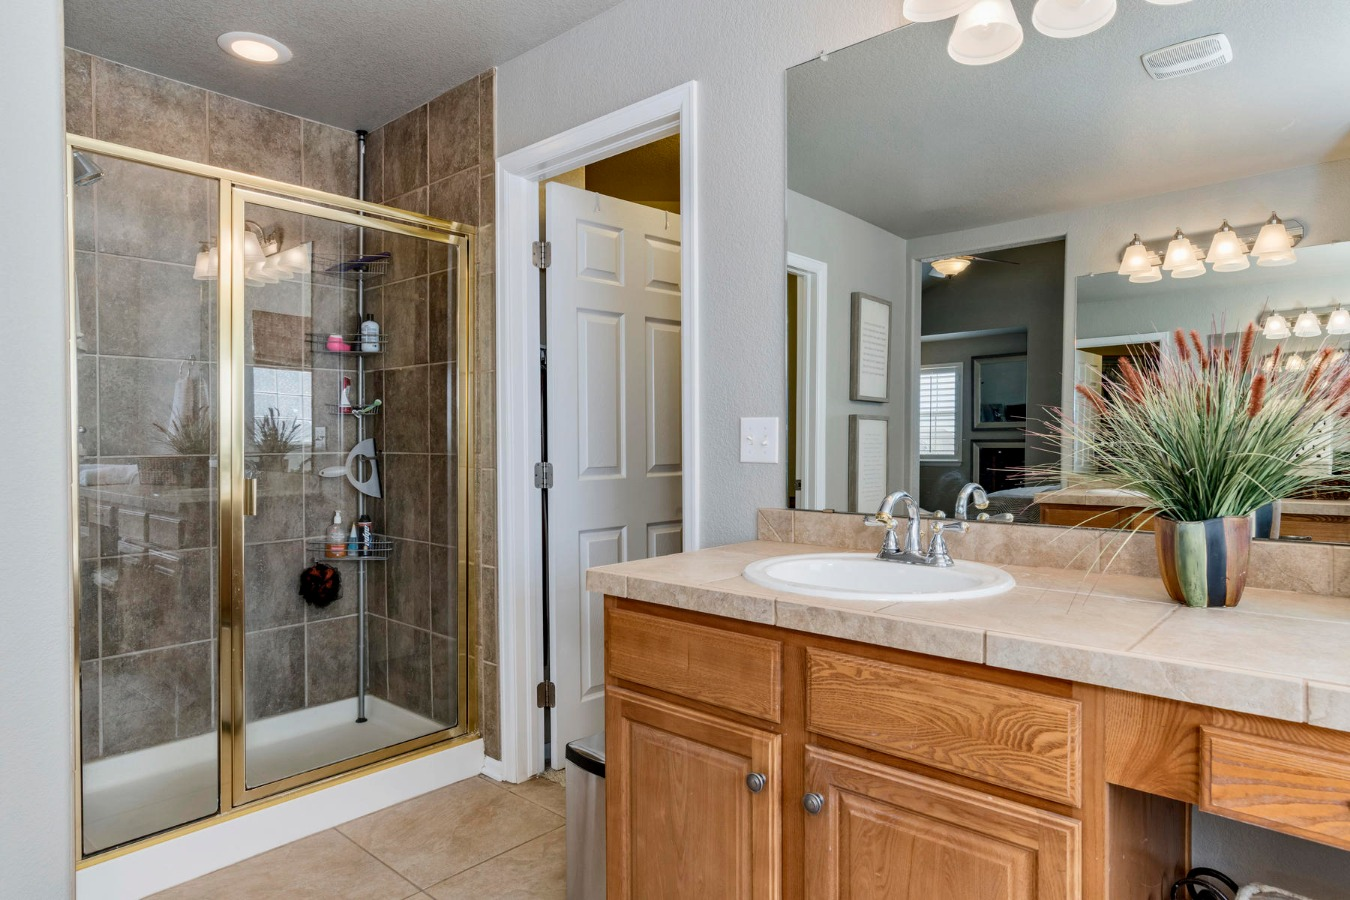 5-pc Master Bath with Large Shower